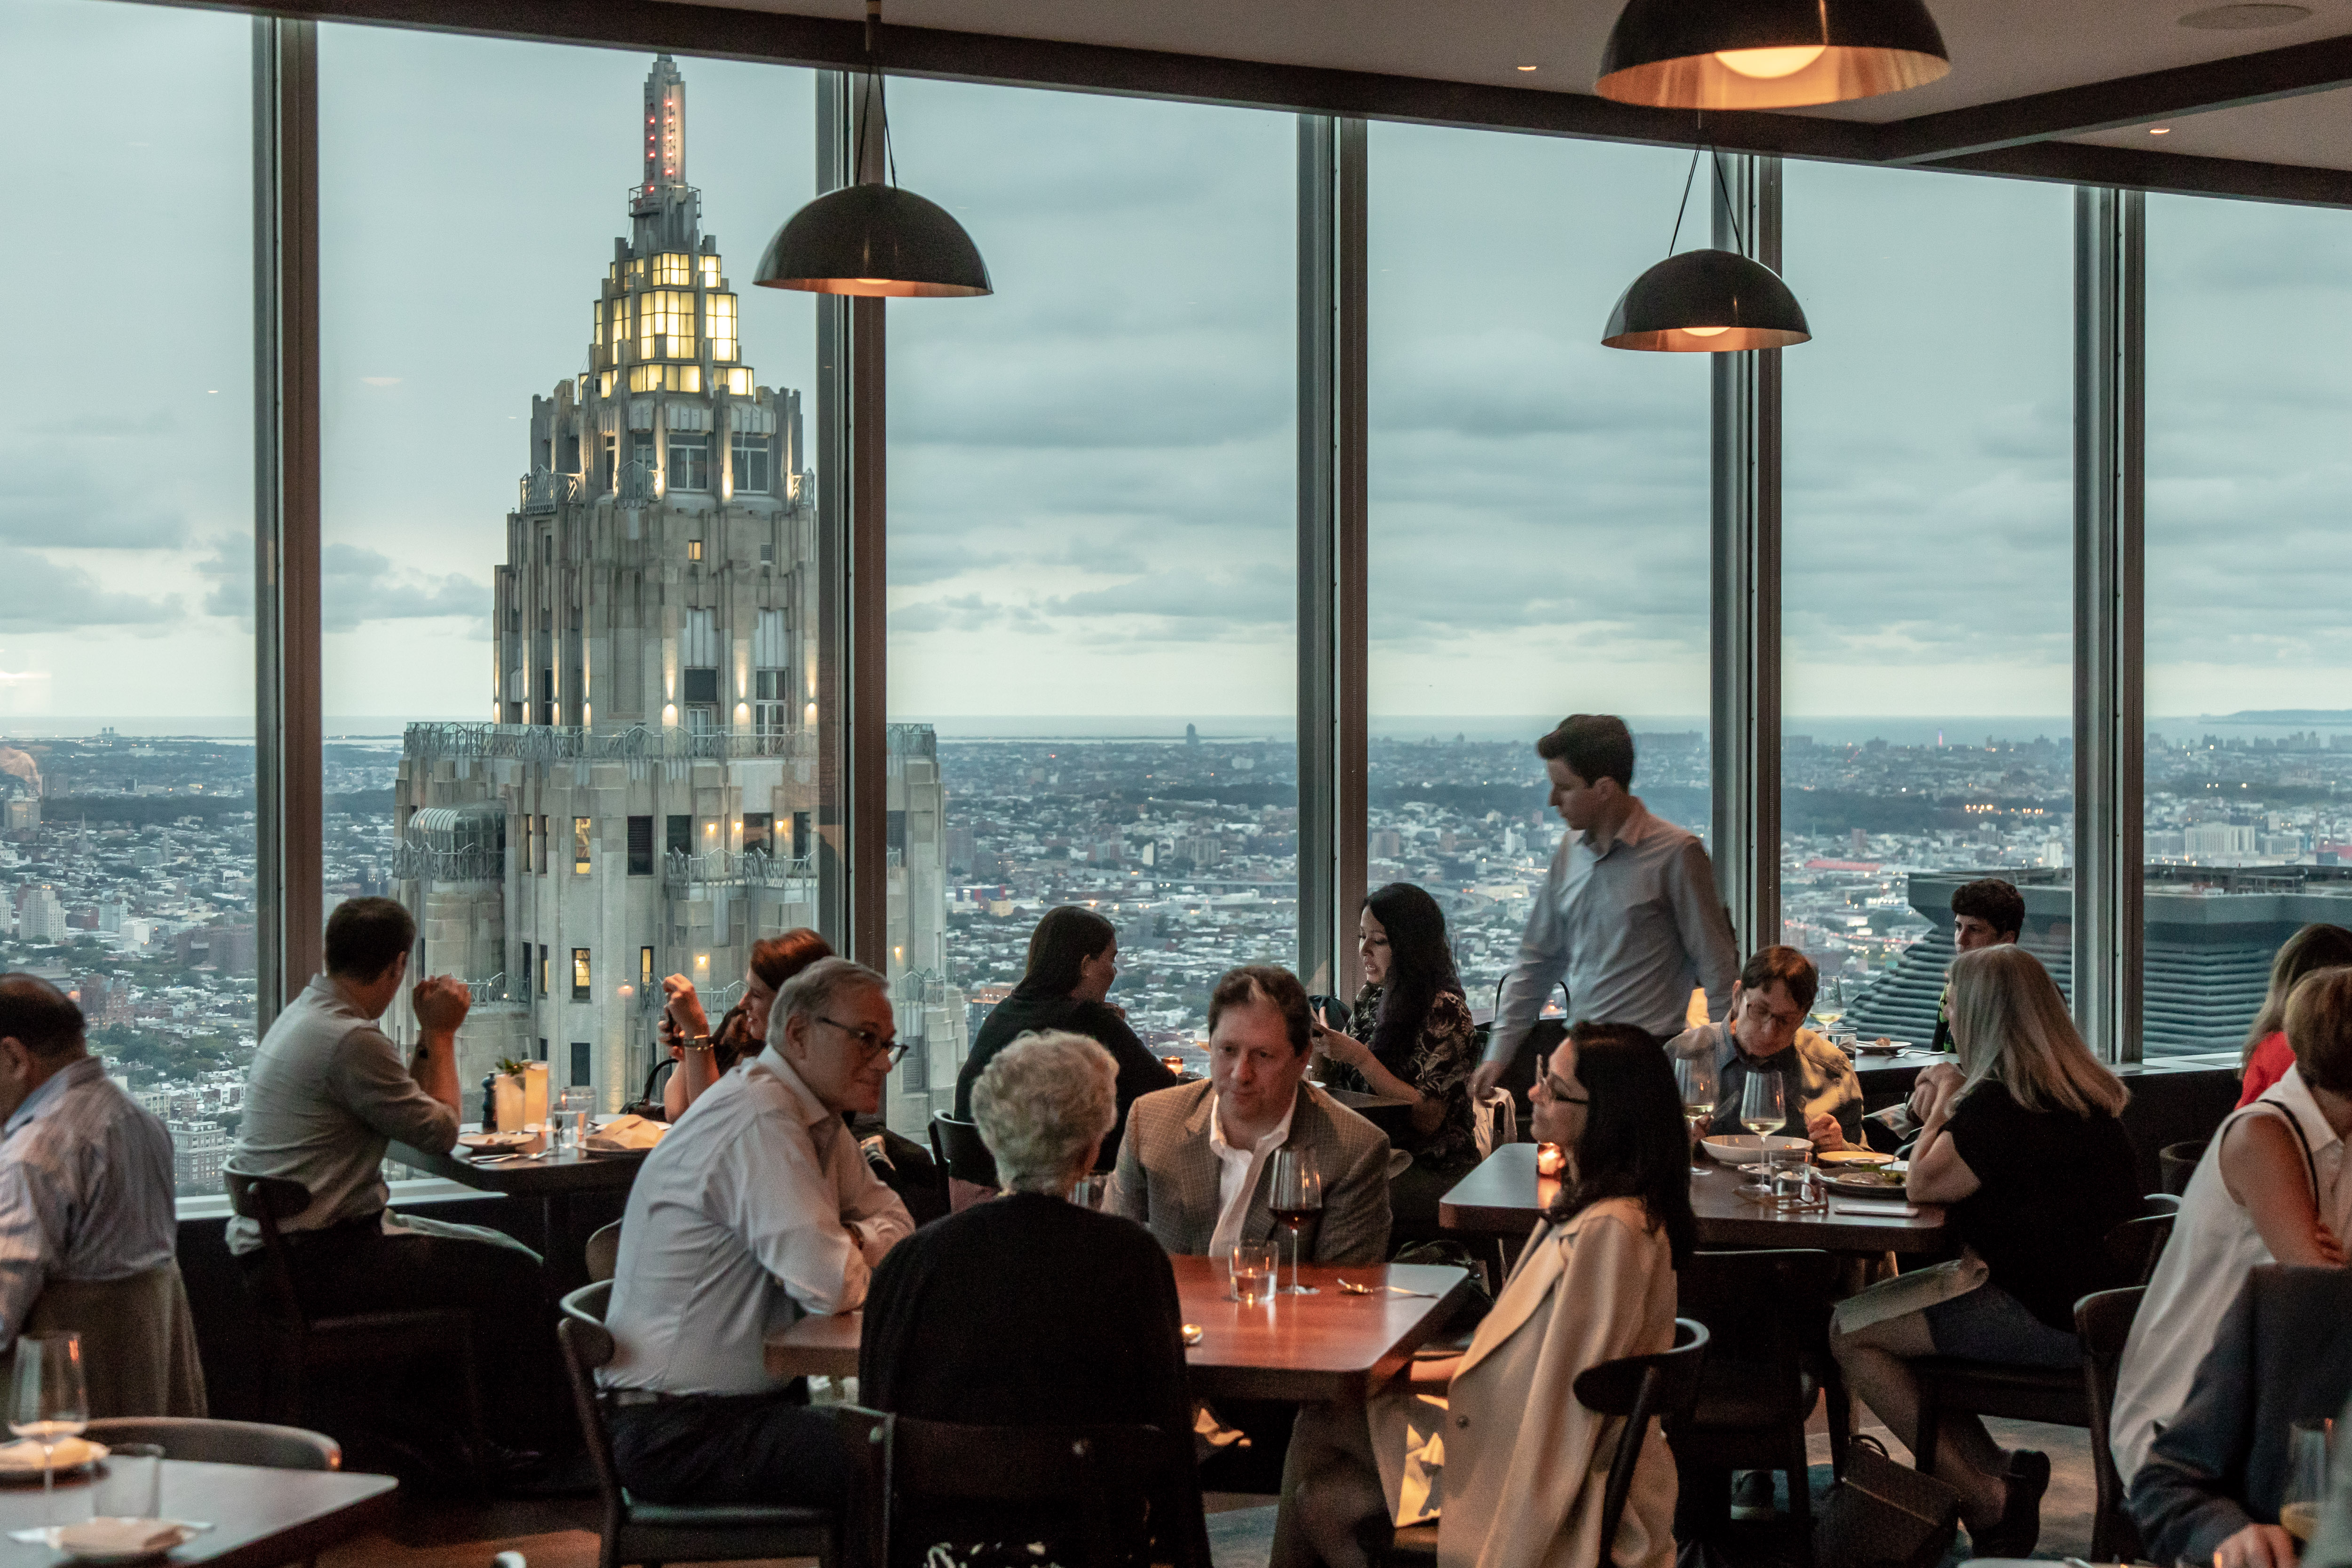 Patrons dine in view of the Art Deco 70 Pine